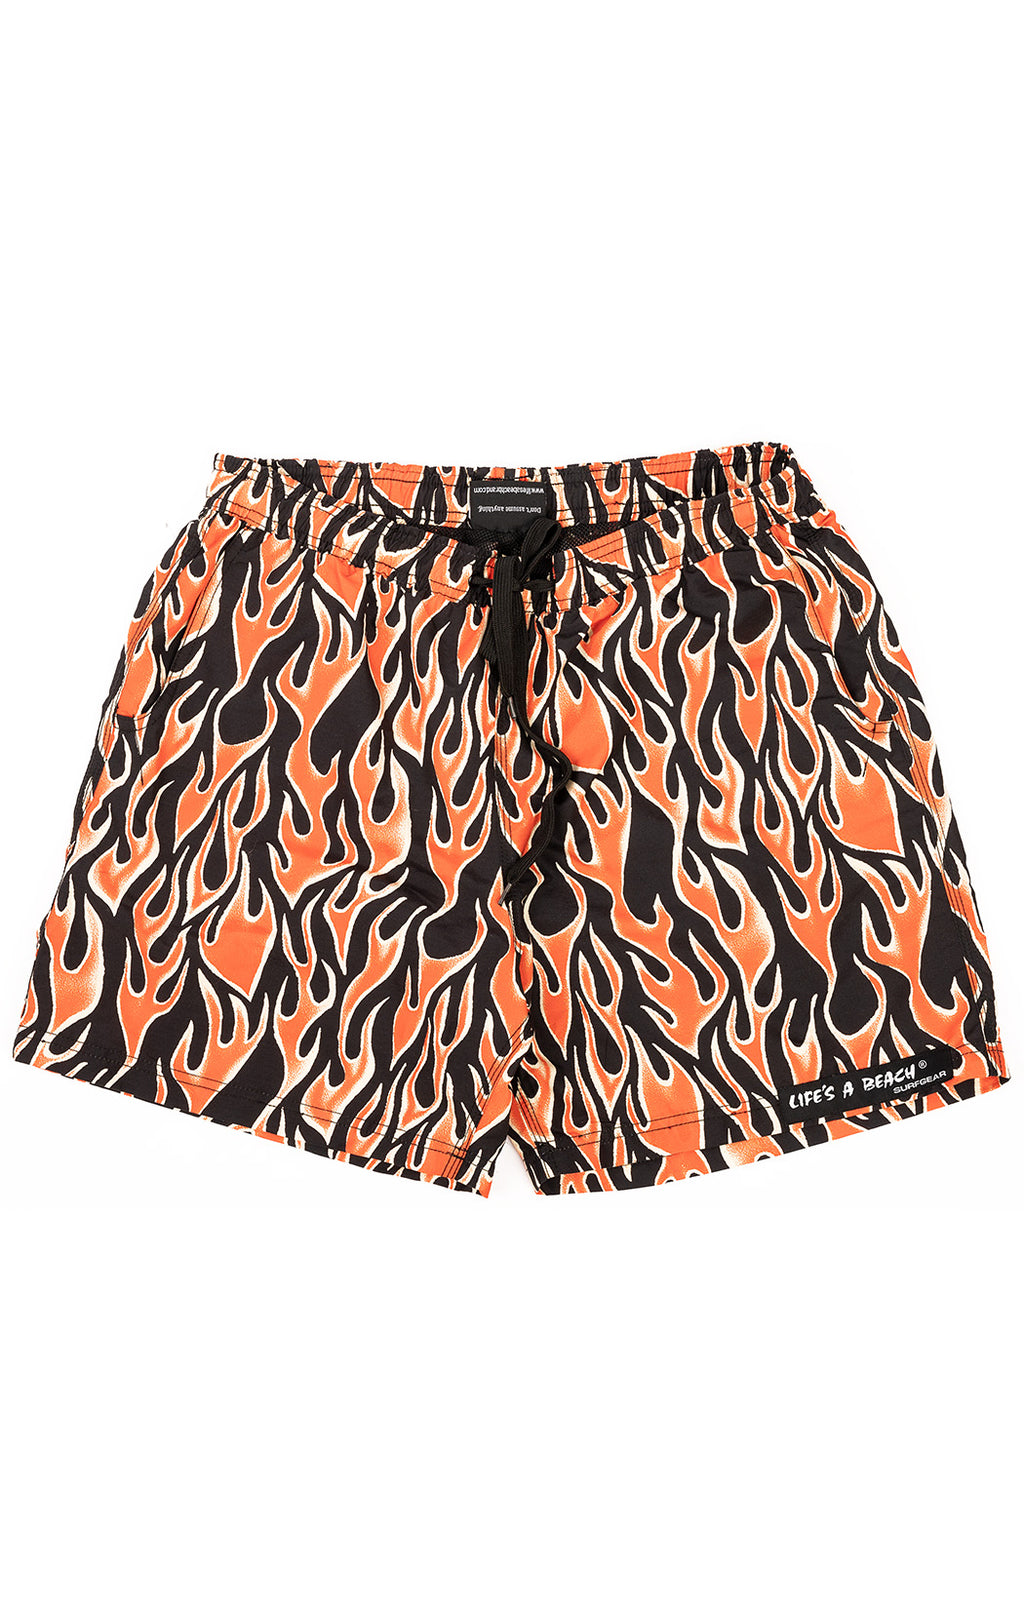 LIFE'S A BEACH Swim trunks Size: XL